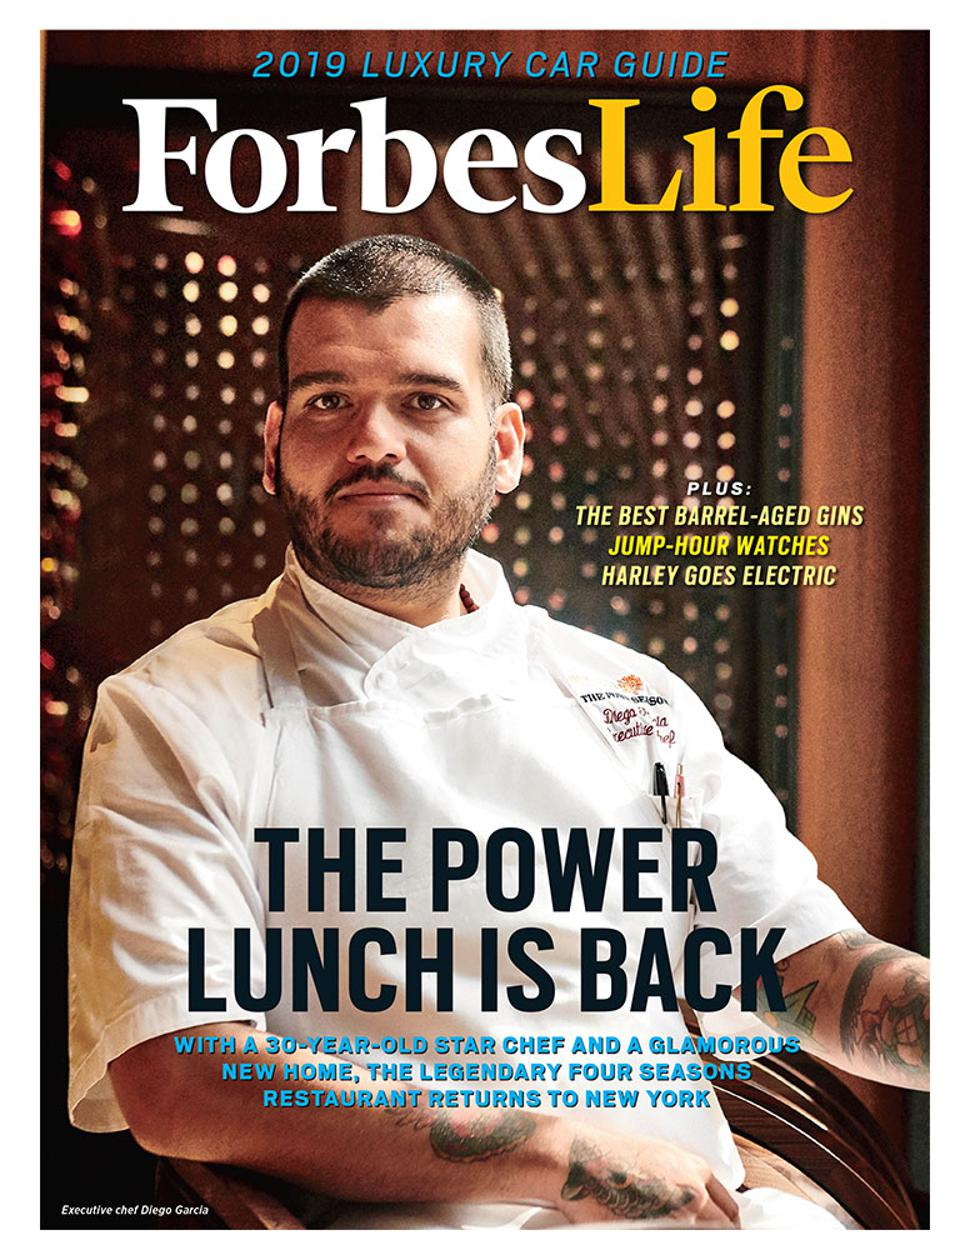 Four Seasons executive chef Diego Garcia on the cover of the September 2018 ForbesLife issue.